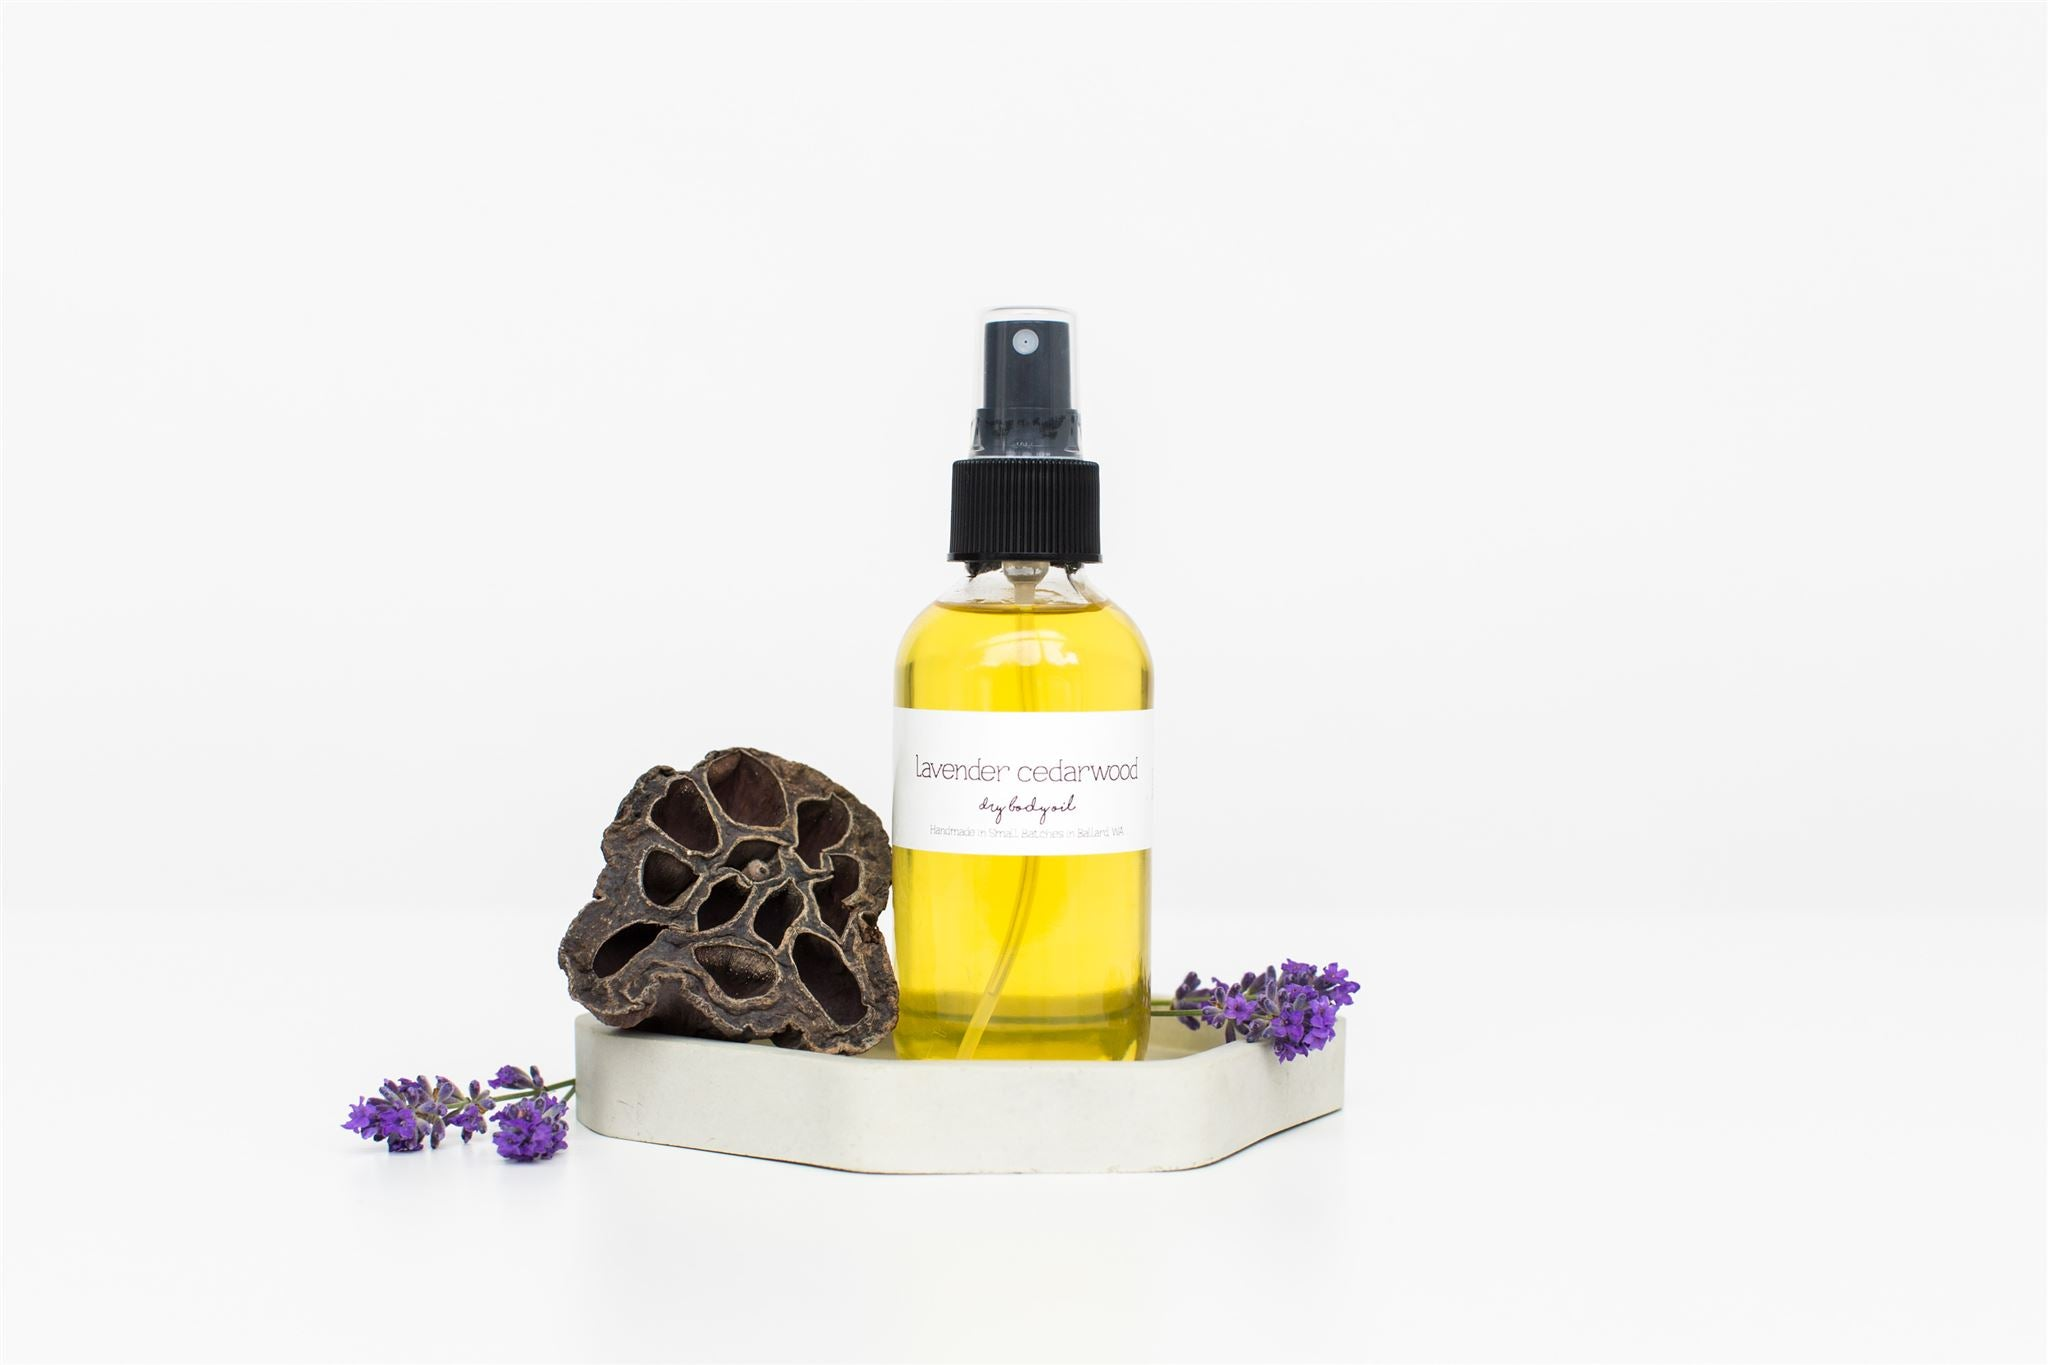 Lavender and Cedarwood Body Oil Spray